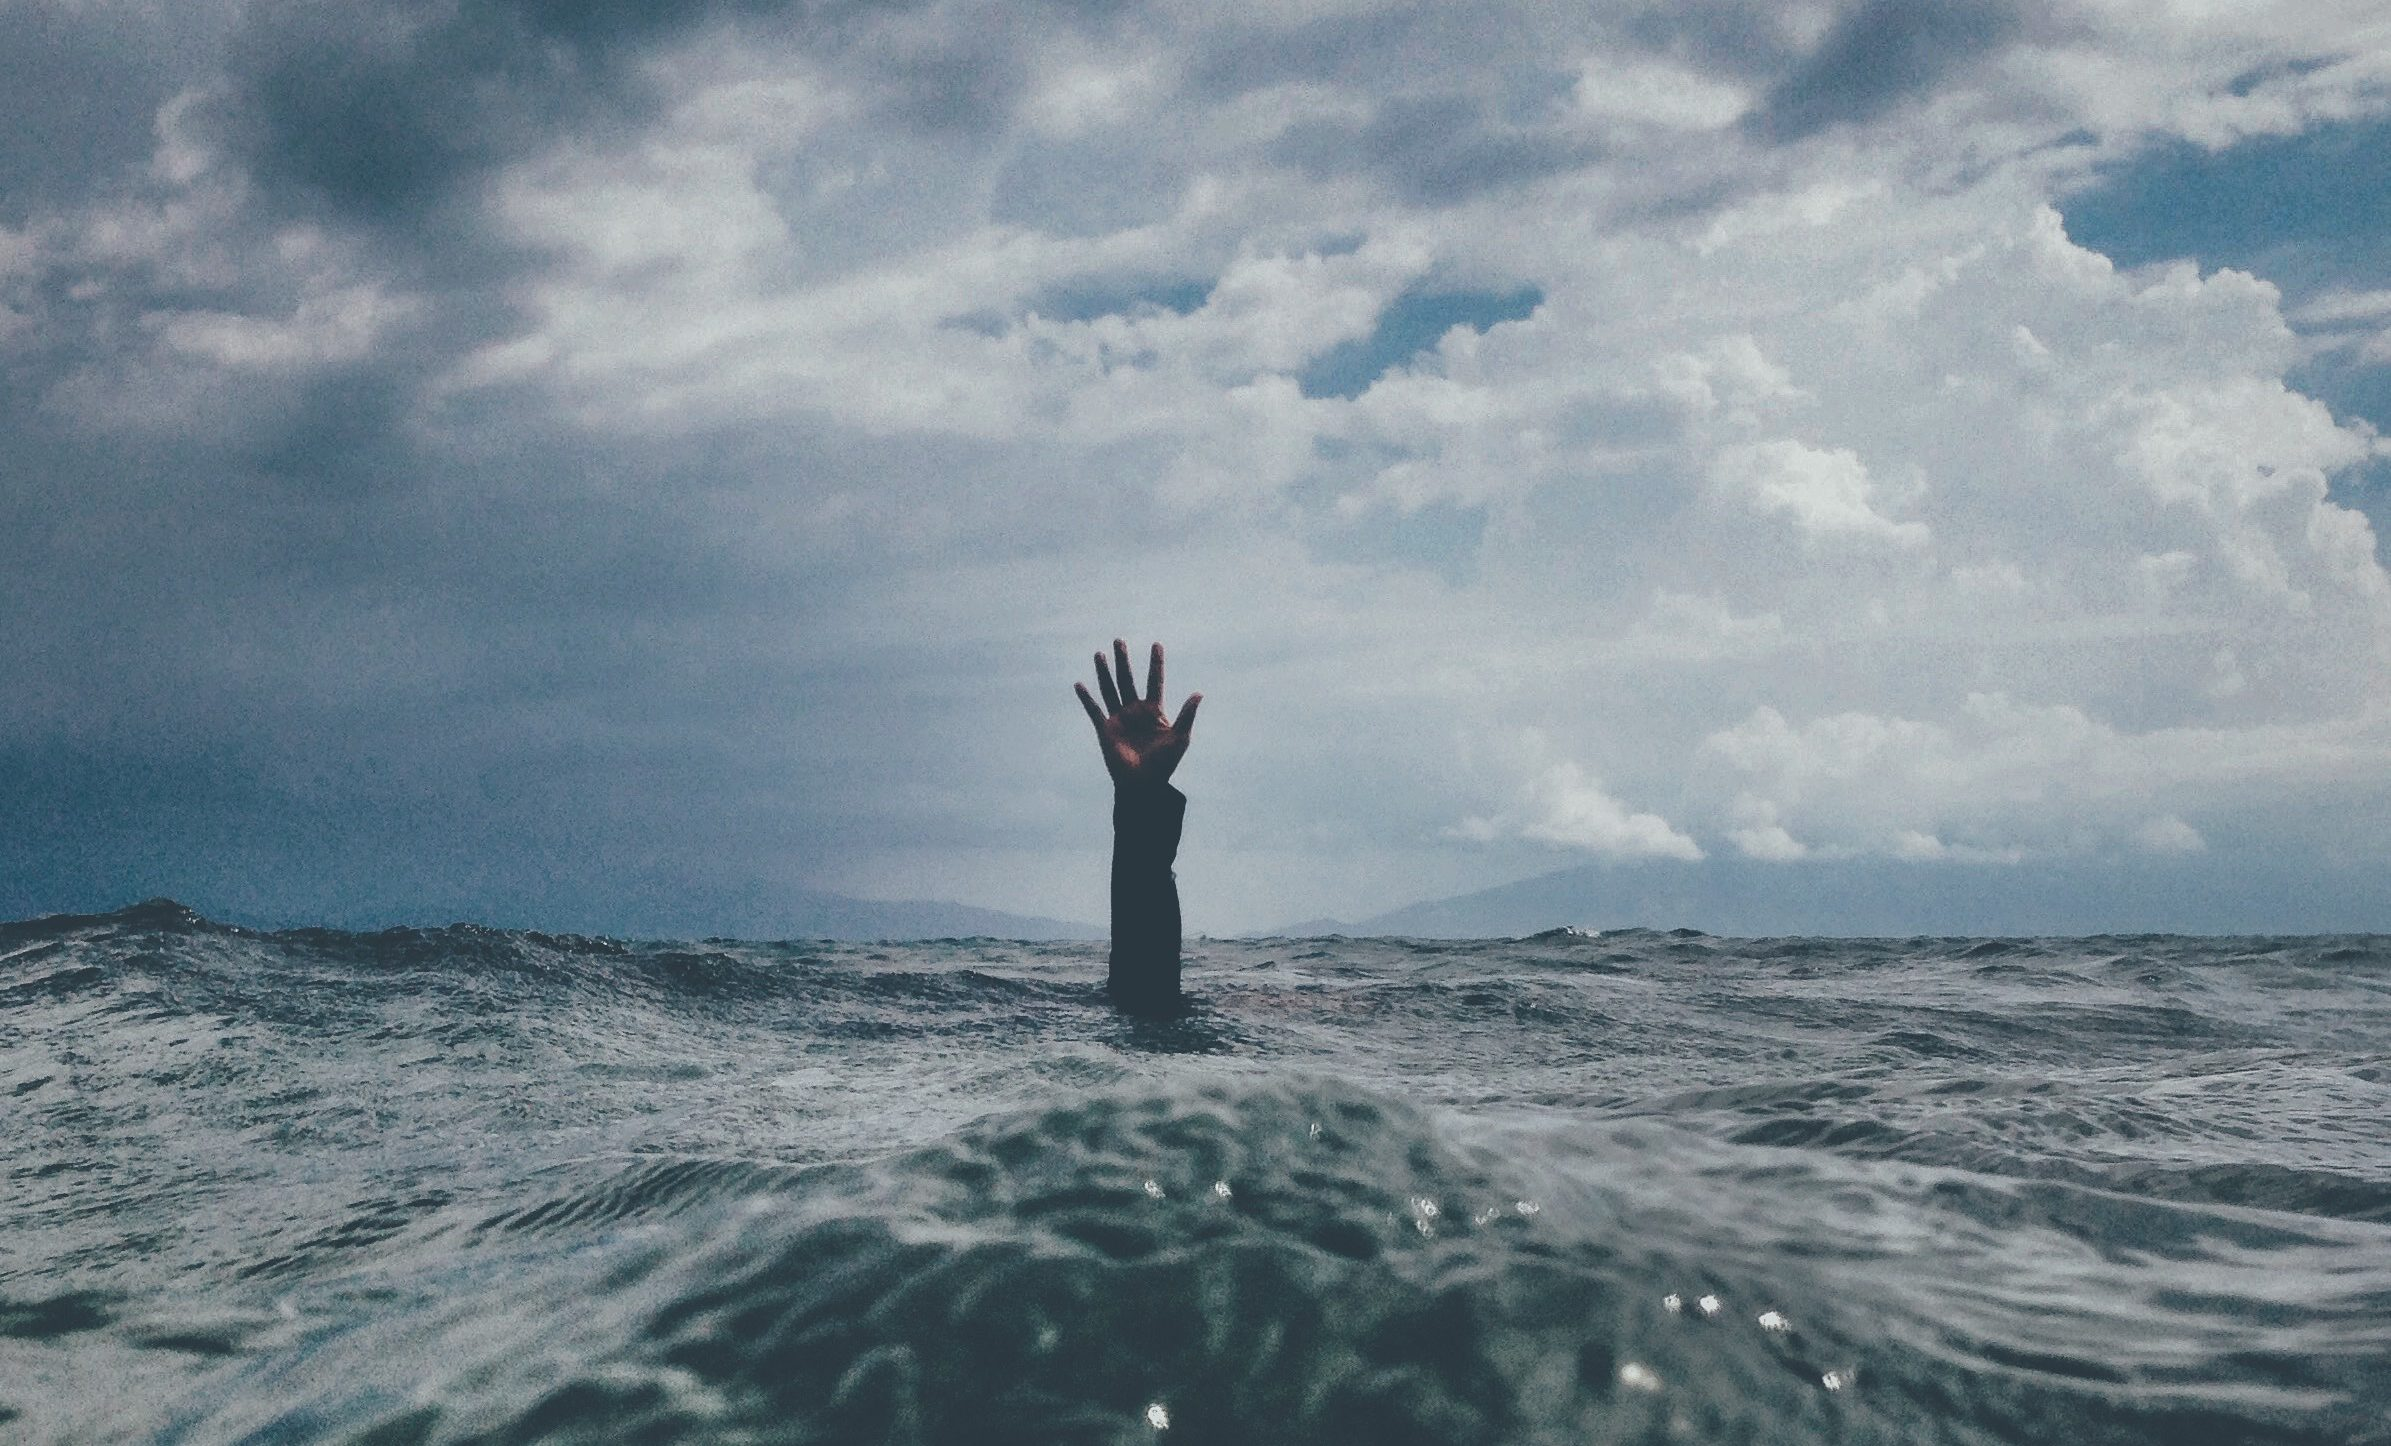 A person is entirely submerged under water with only one arm breaking through and reaching straight up.